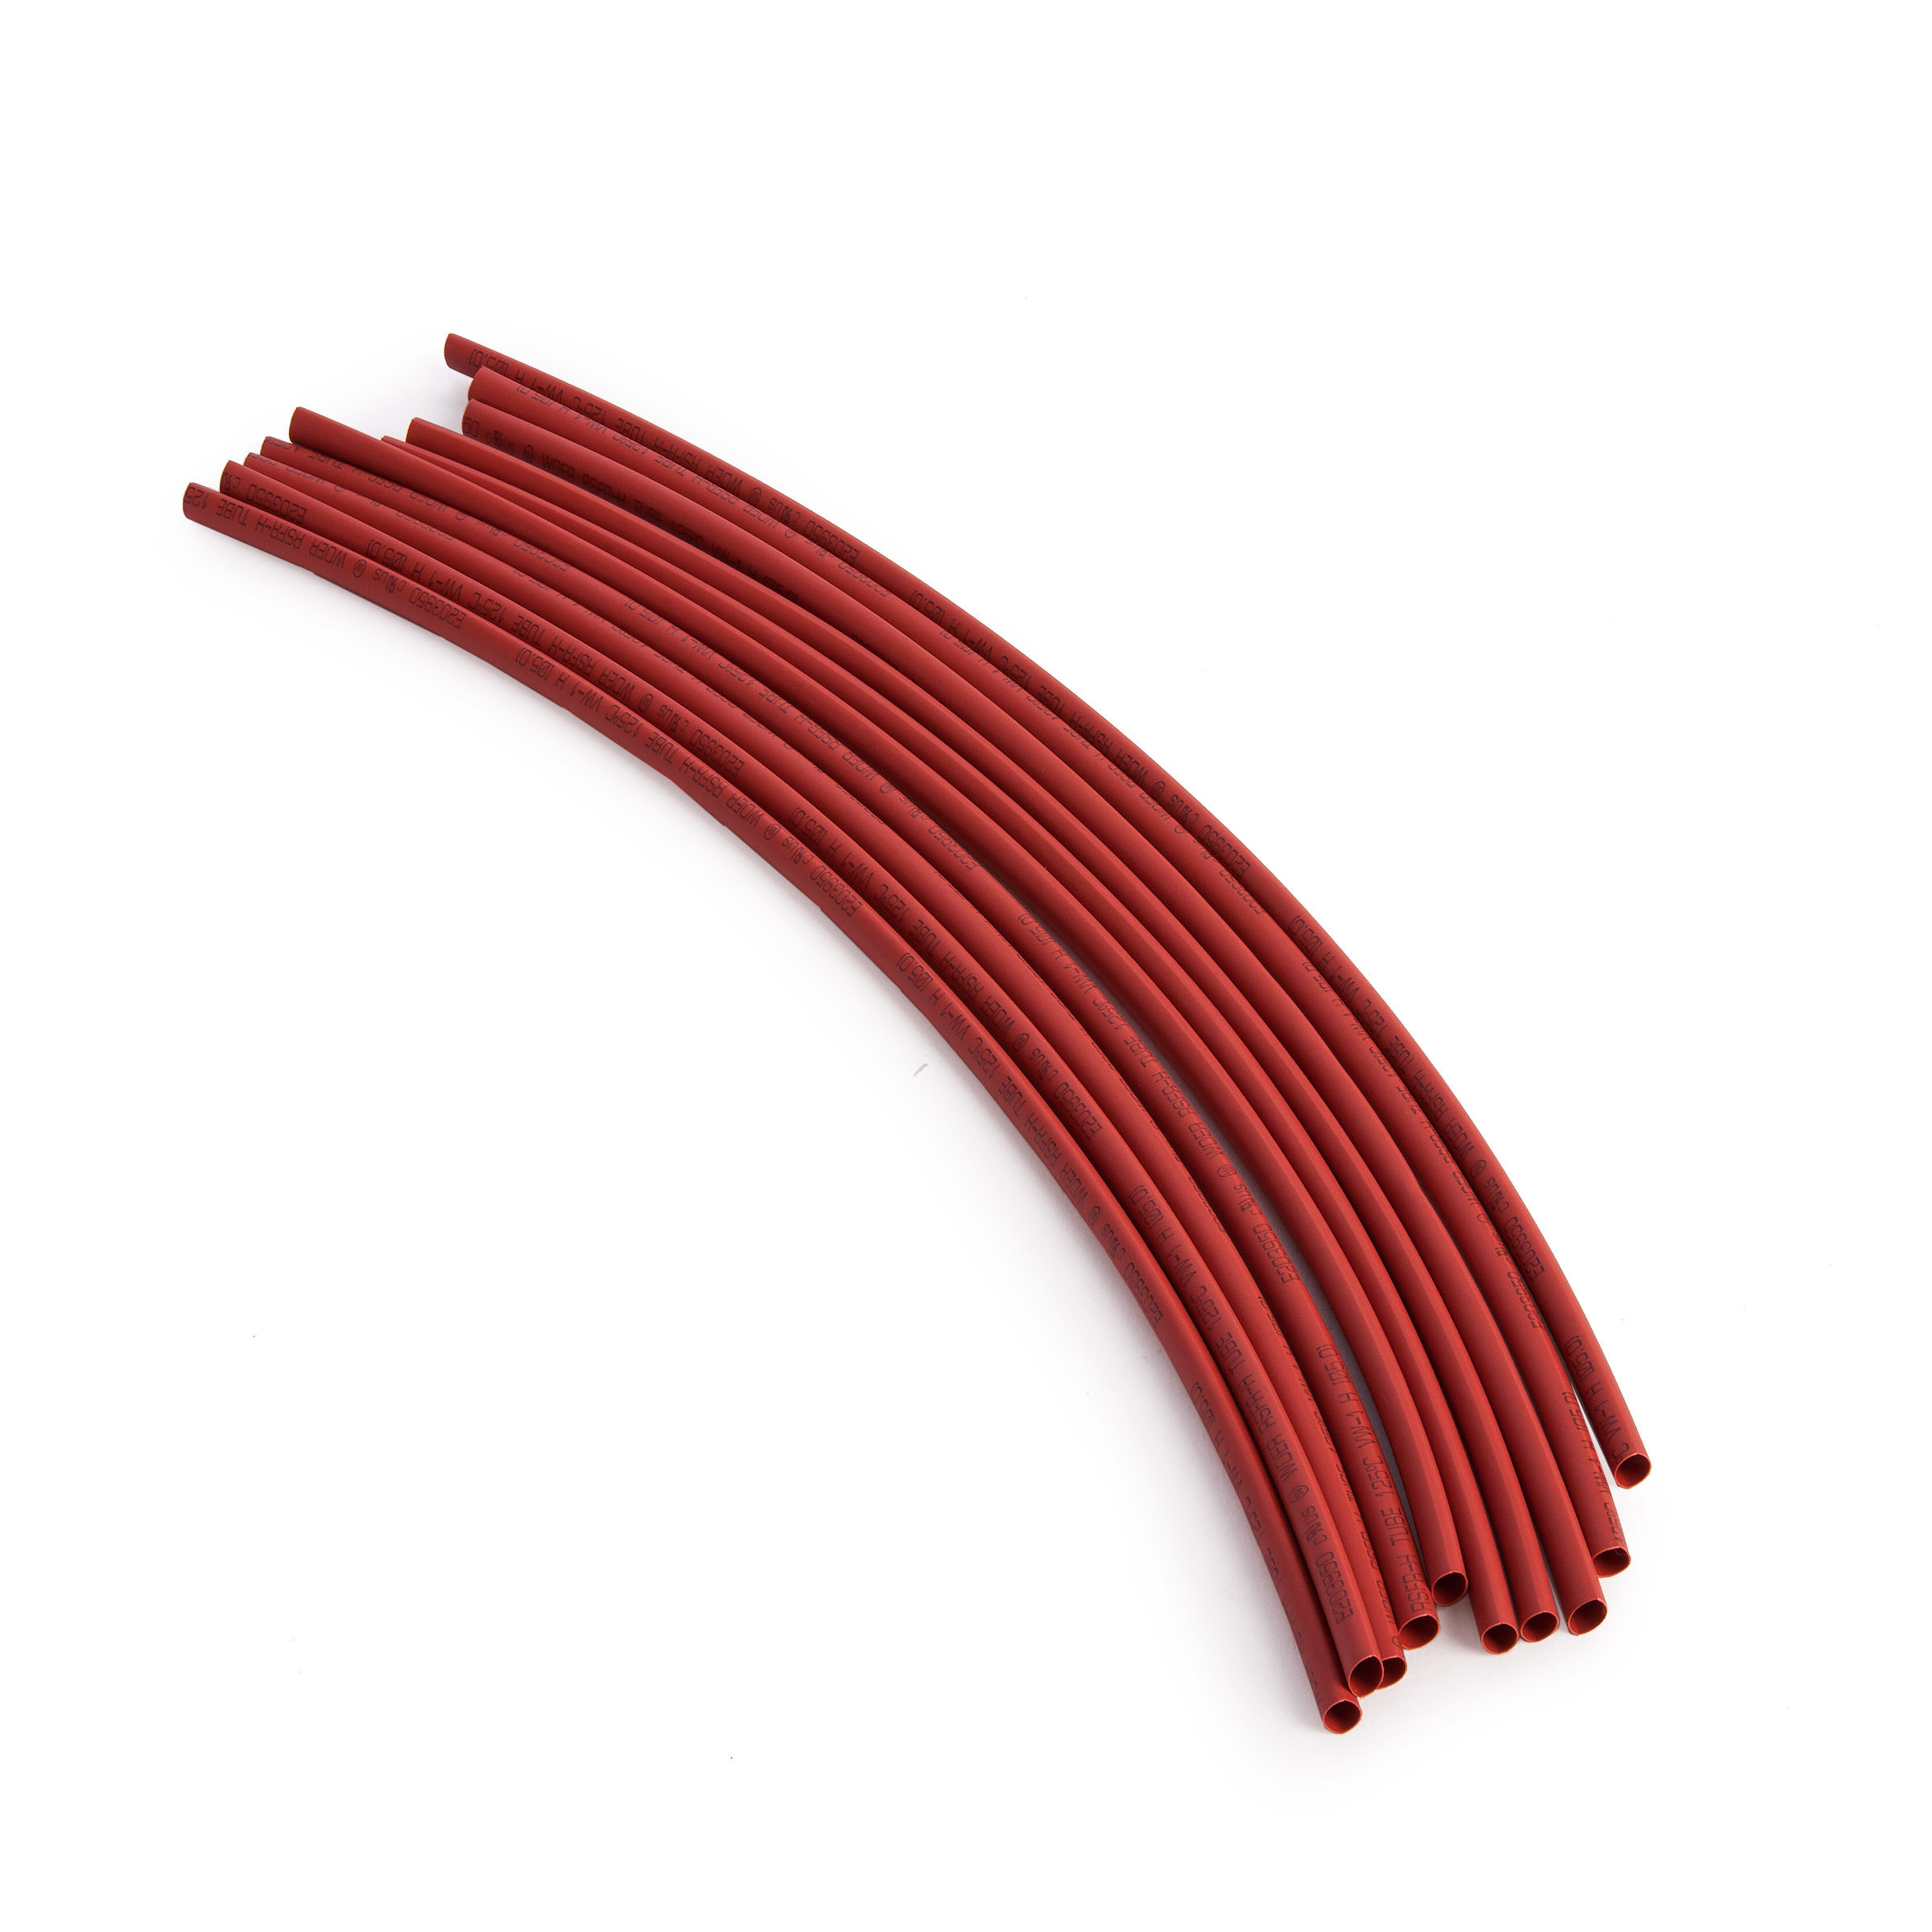 BlueSpot 40512 Red Heat Shrink Tubing 300mm (10 Piece) on